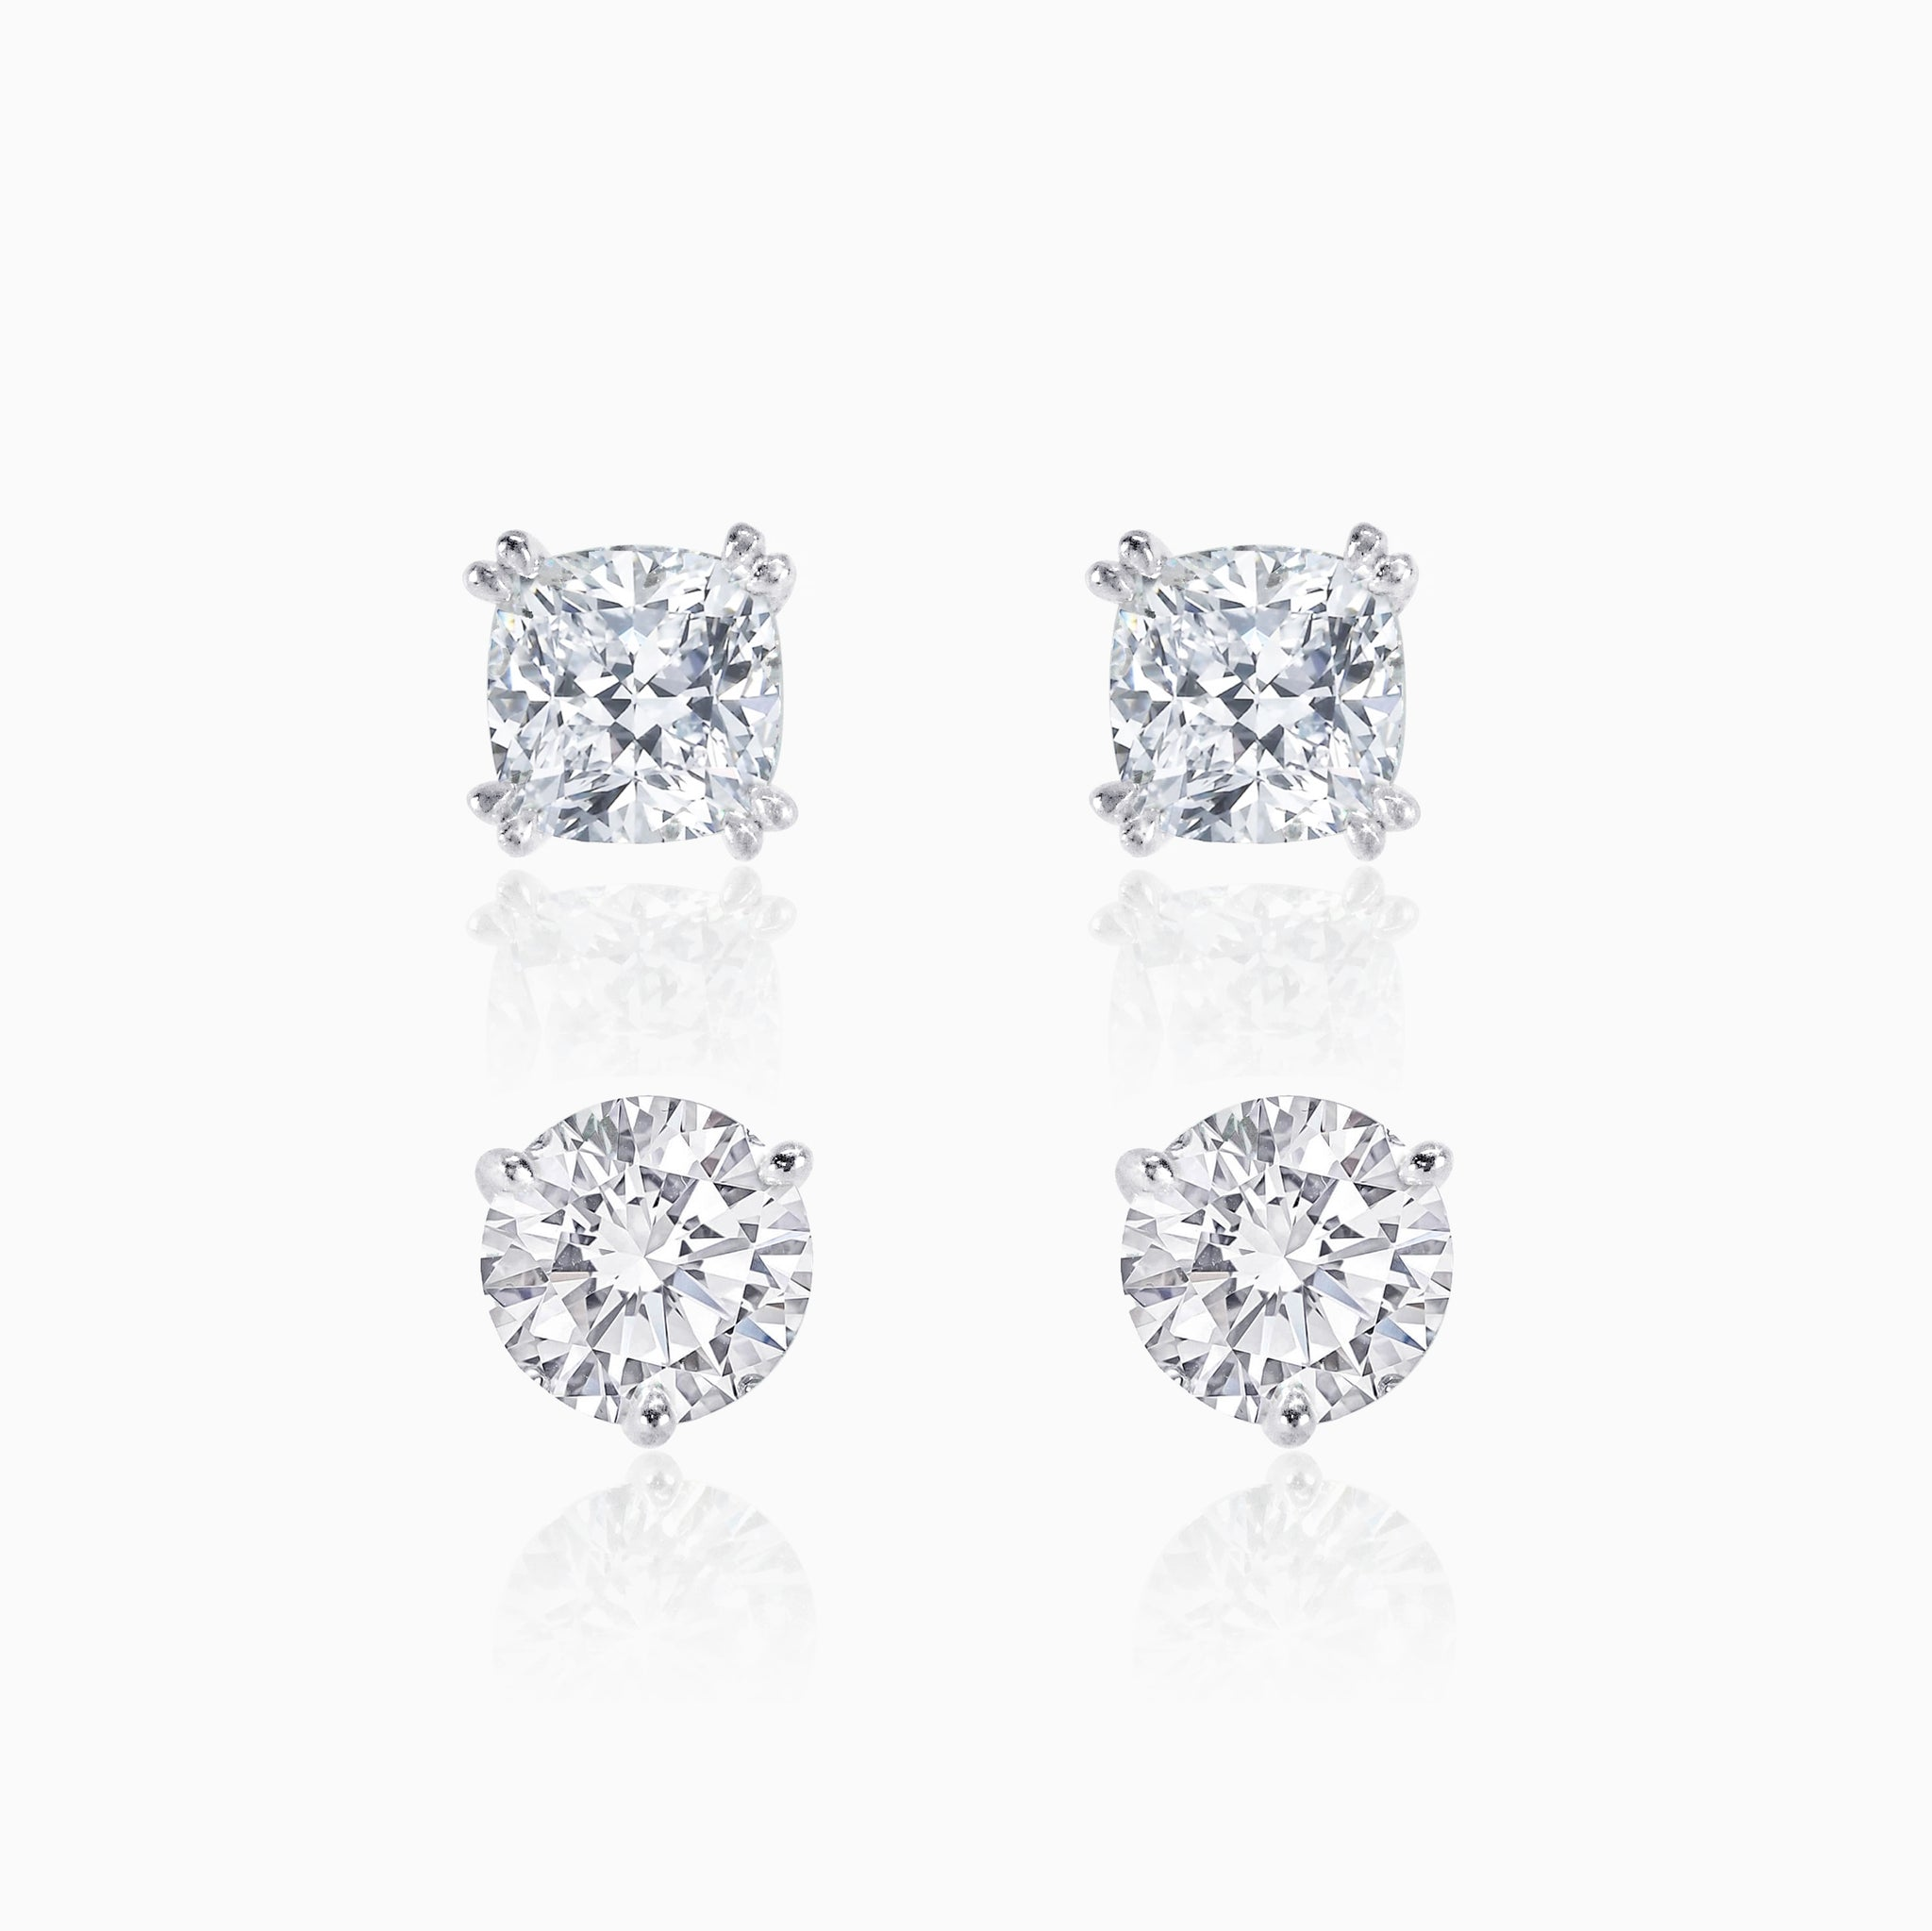 Round & Cushion Cut Stud Earrings